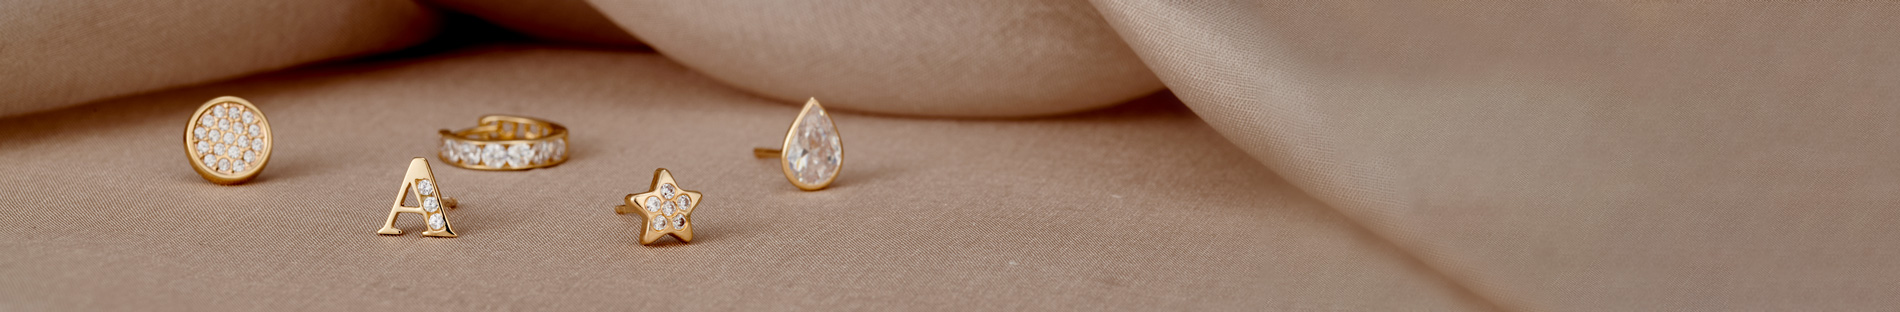 9ct gold earrings with cubic zirconia